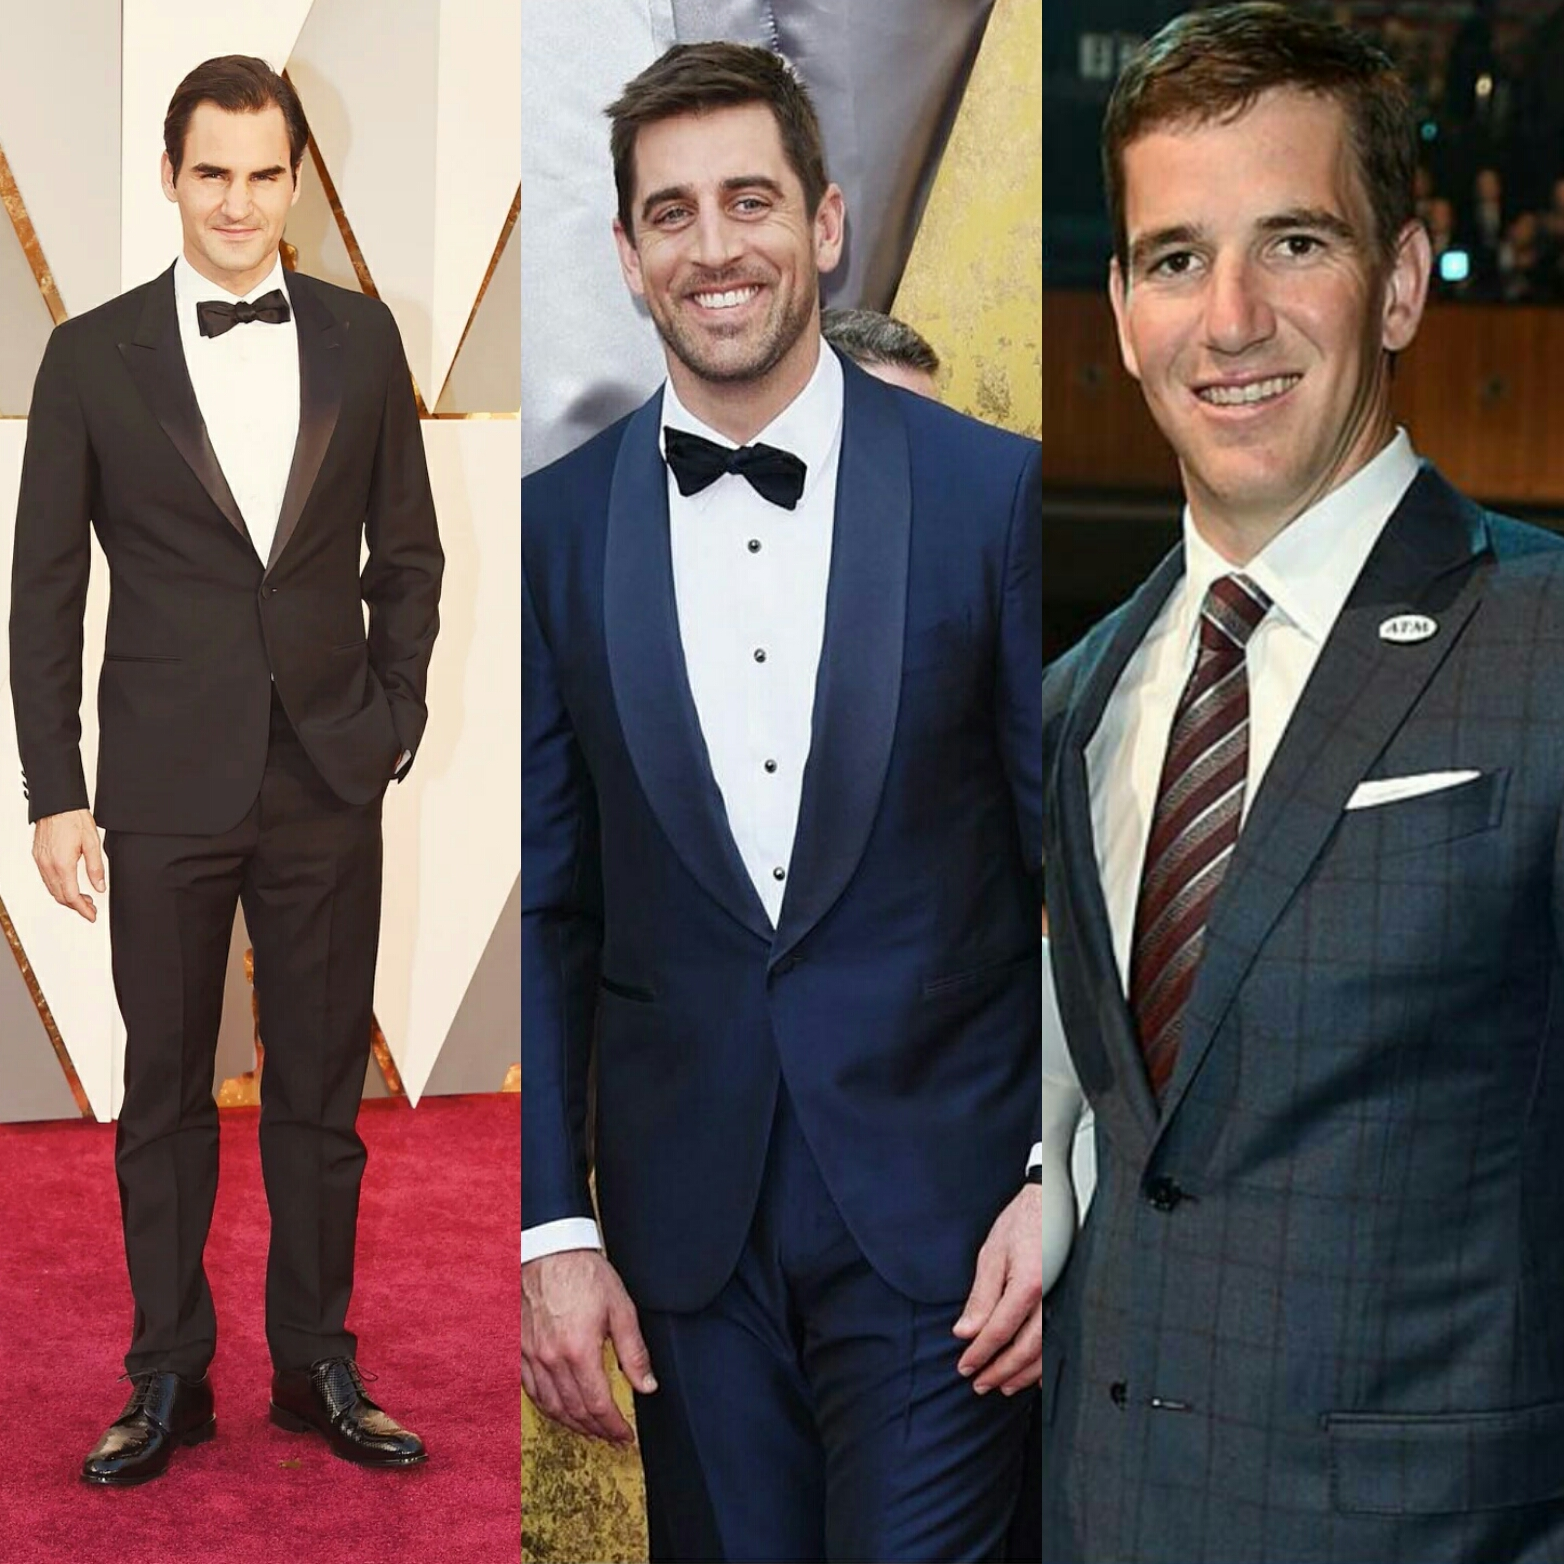 STYLE: Rodger Federer, Aaron Rodgers, Eli Manning Attend Oscars 2016